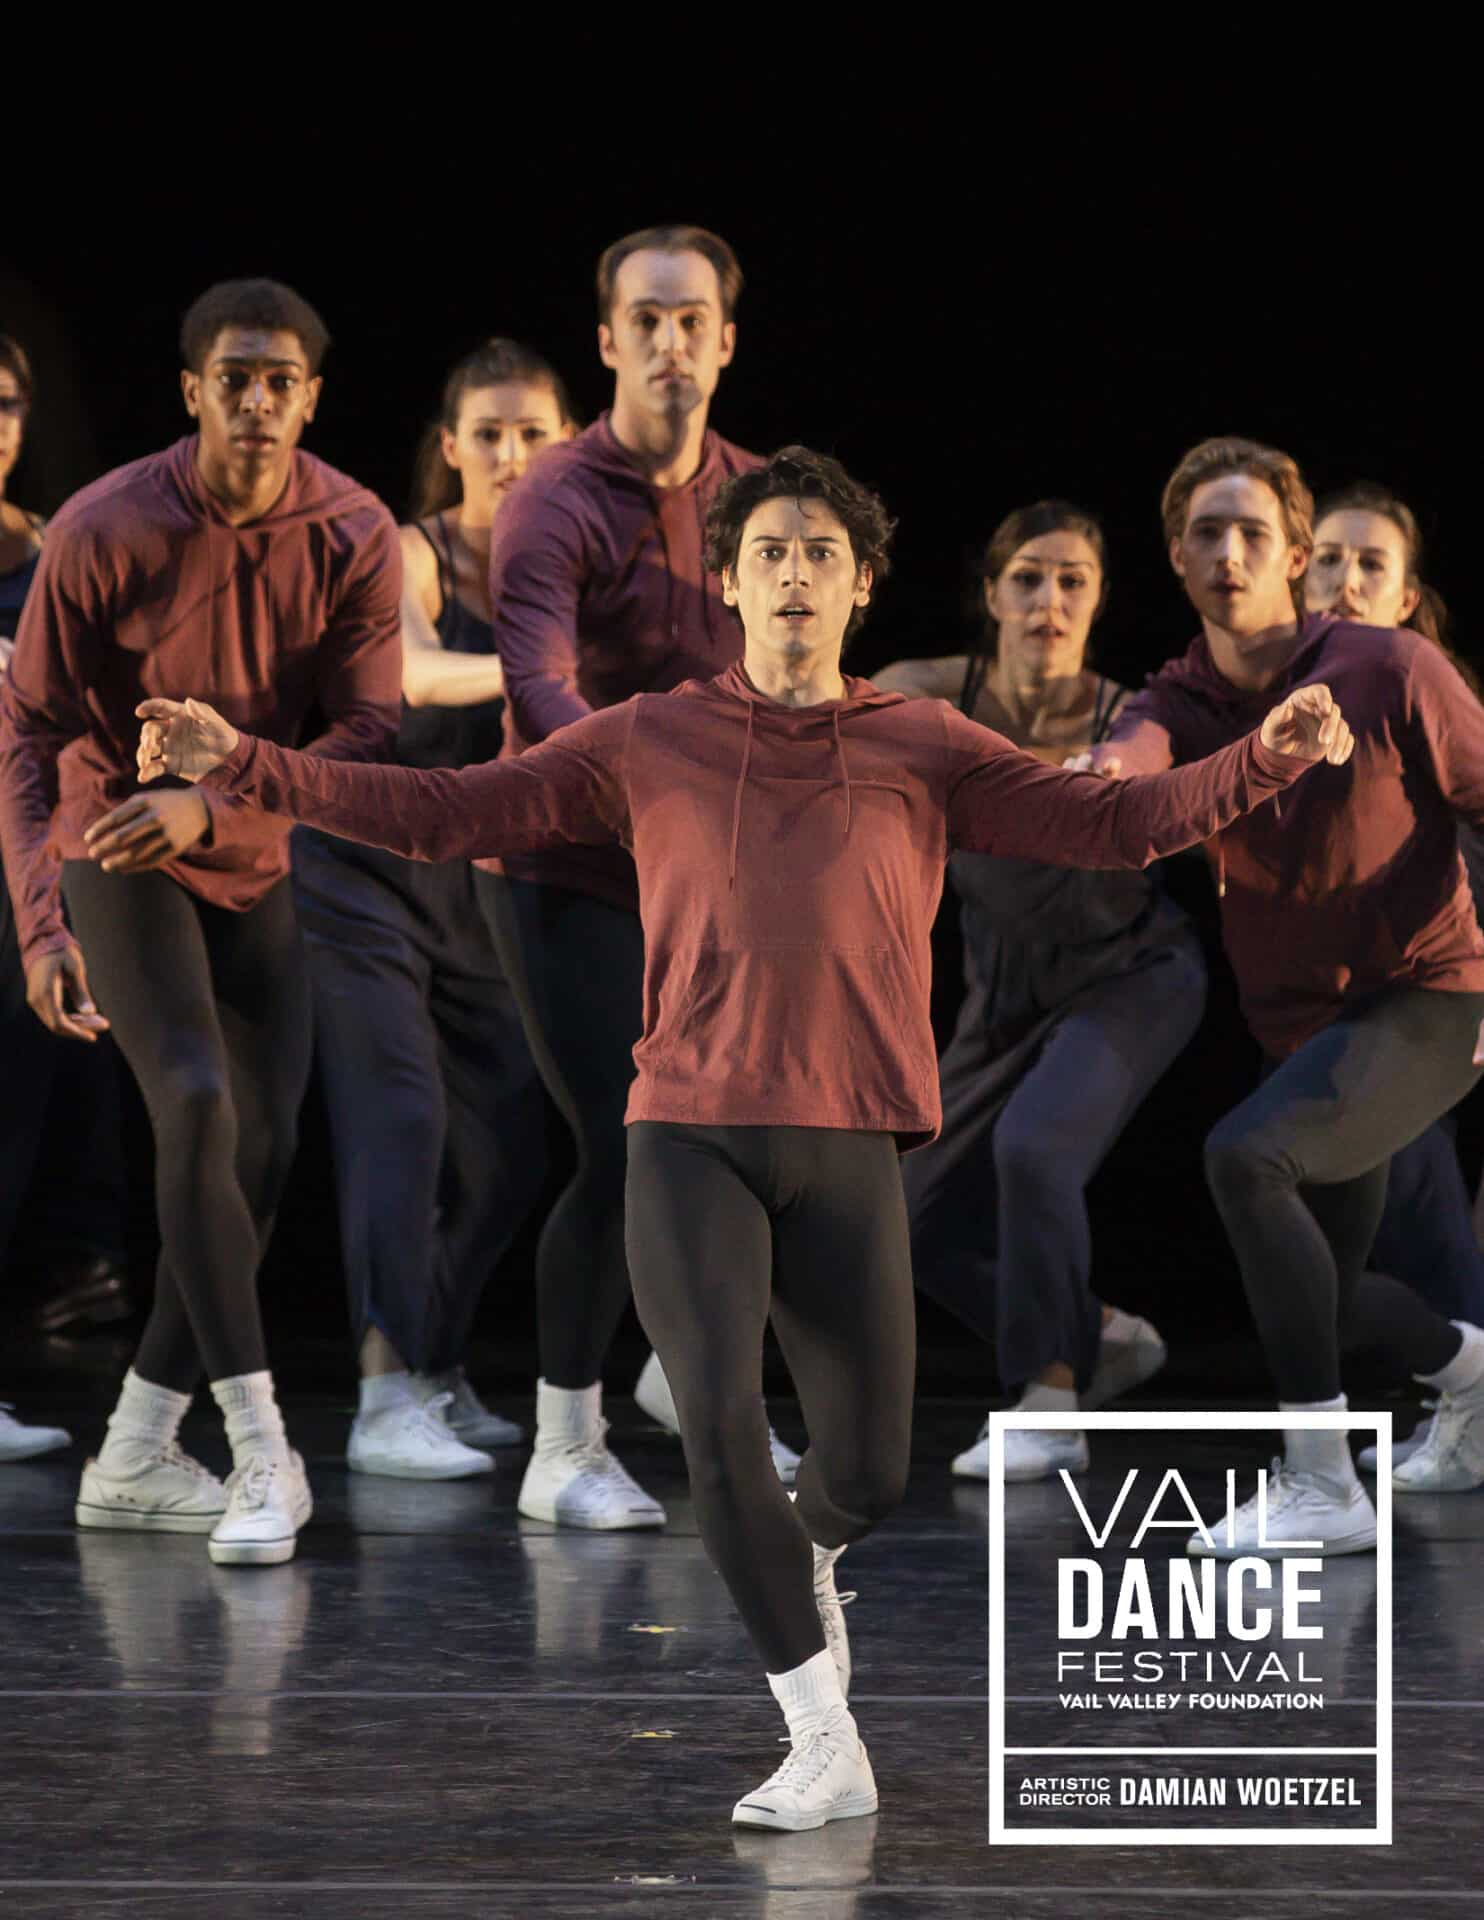 Vail Dance | NOW: Premieres Digital Festival Screening